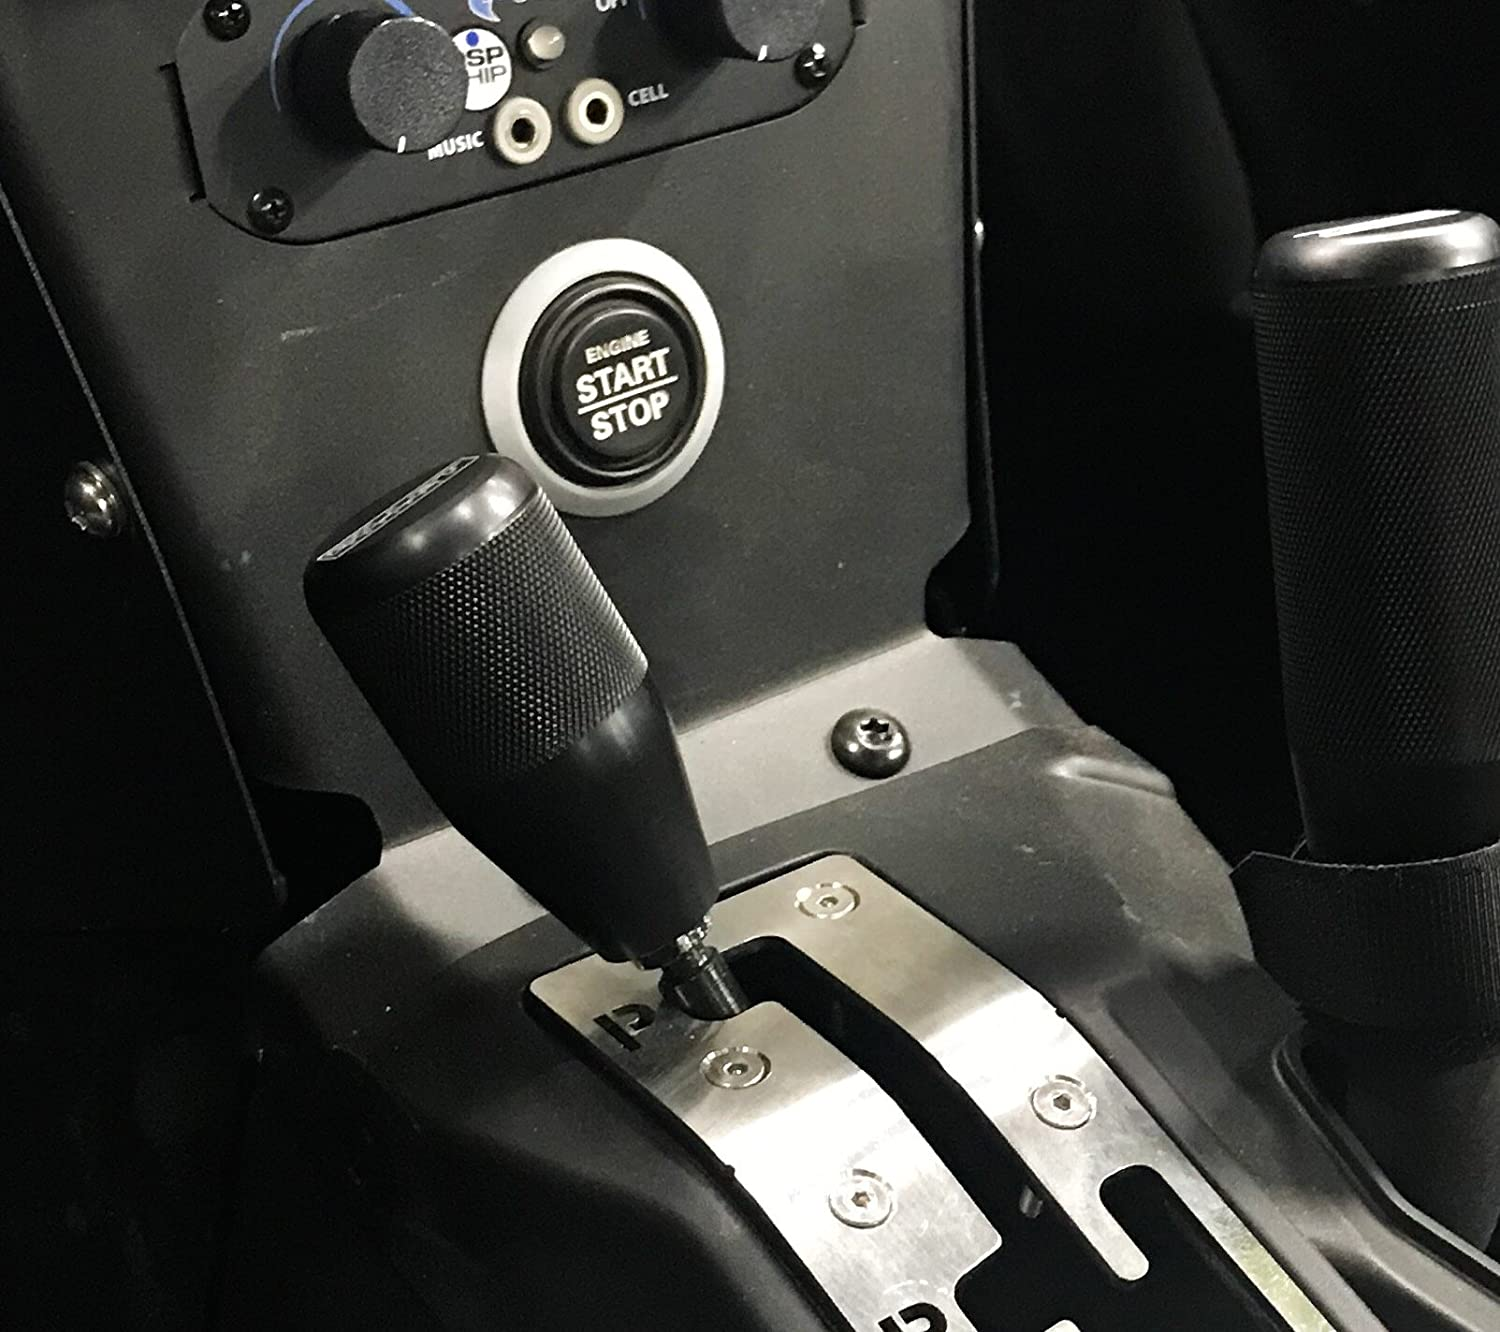 Billet Equipped Can Am Maverick X3 Aluminum Shifter Knob - Knurled with Black Anodize Finish Billet Equipped UTV